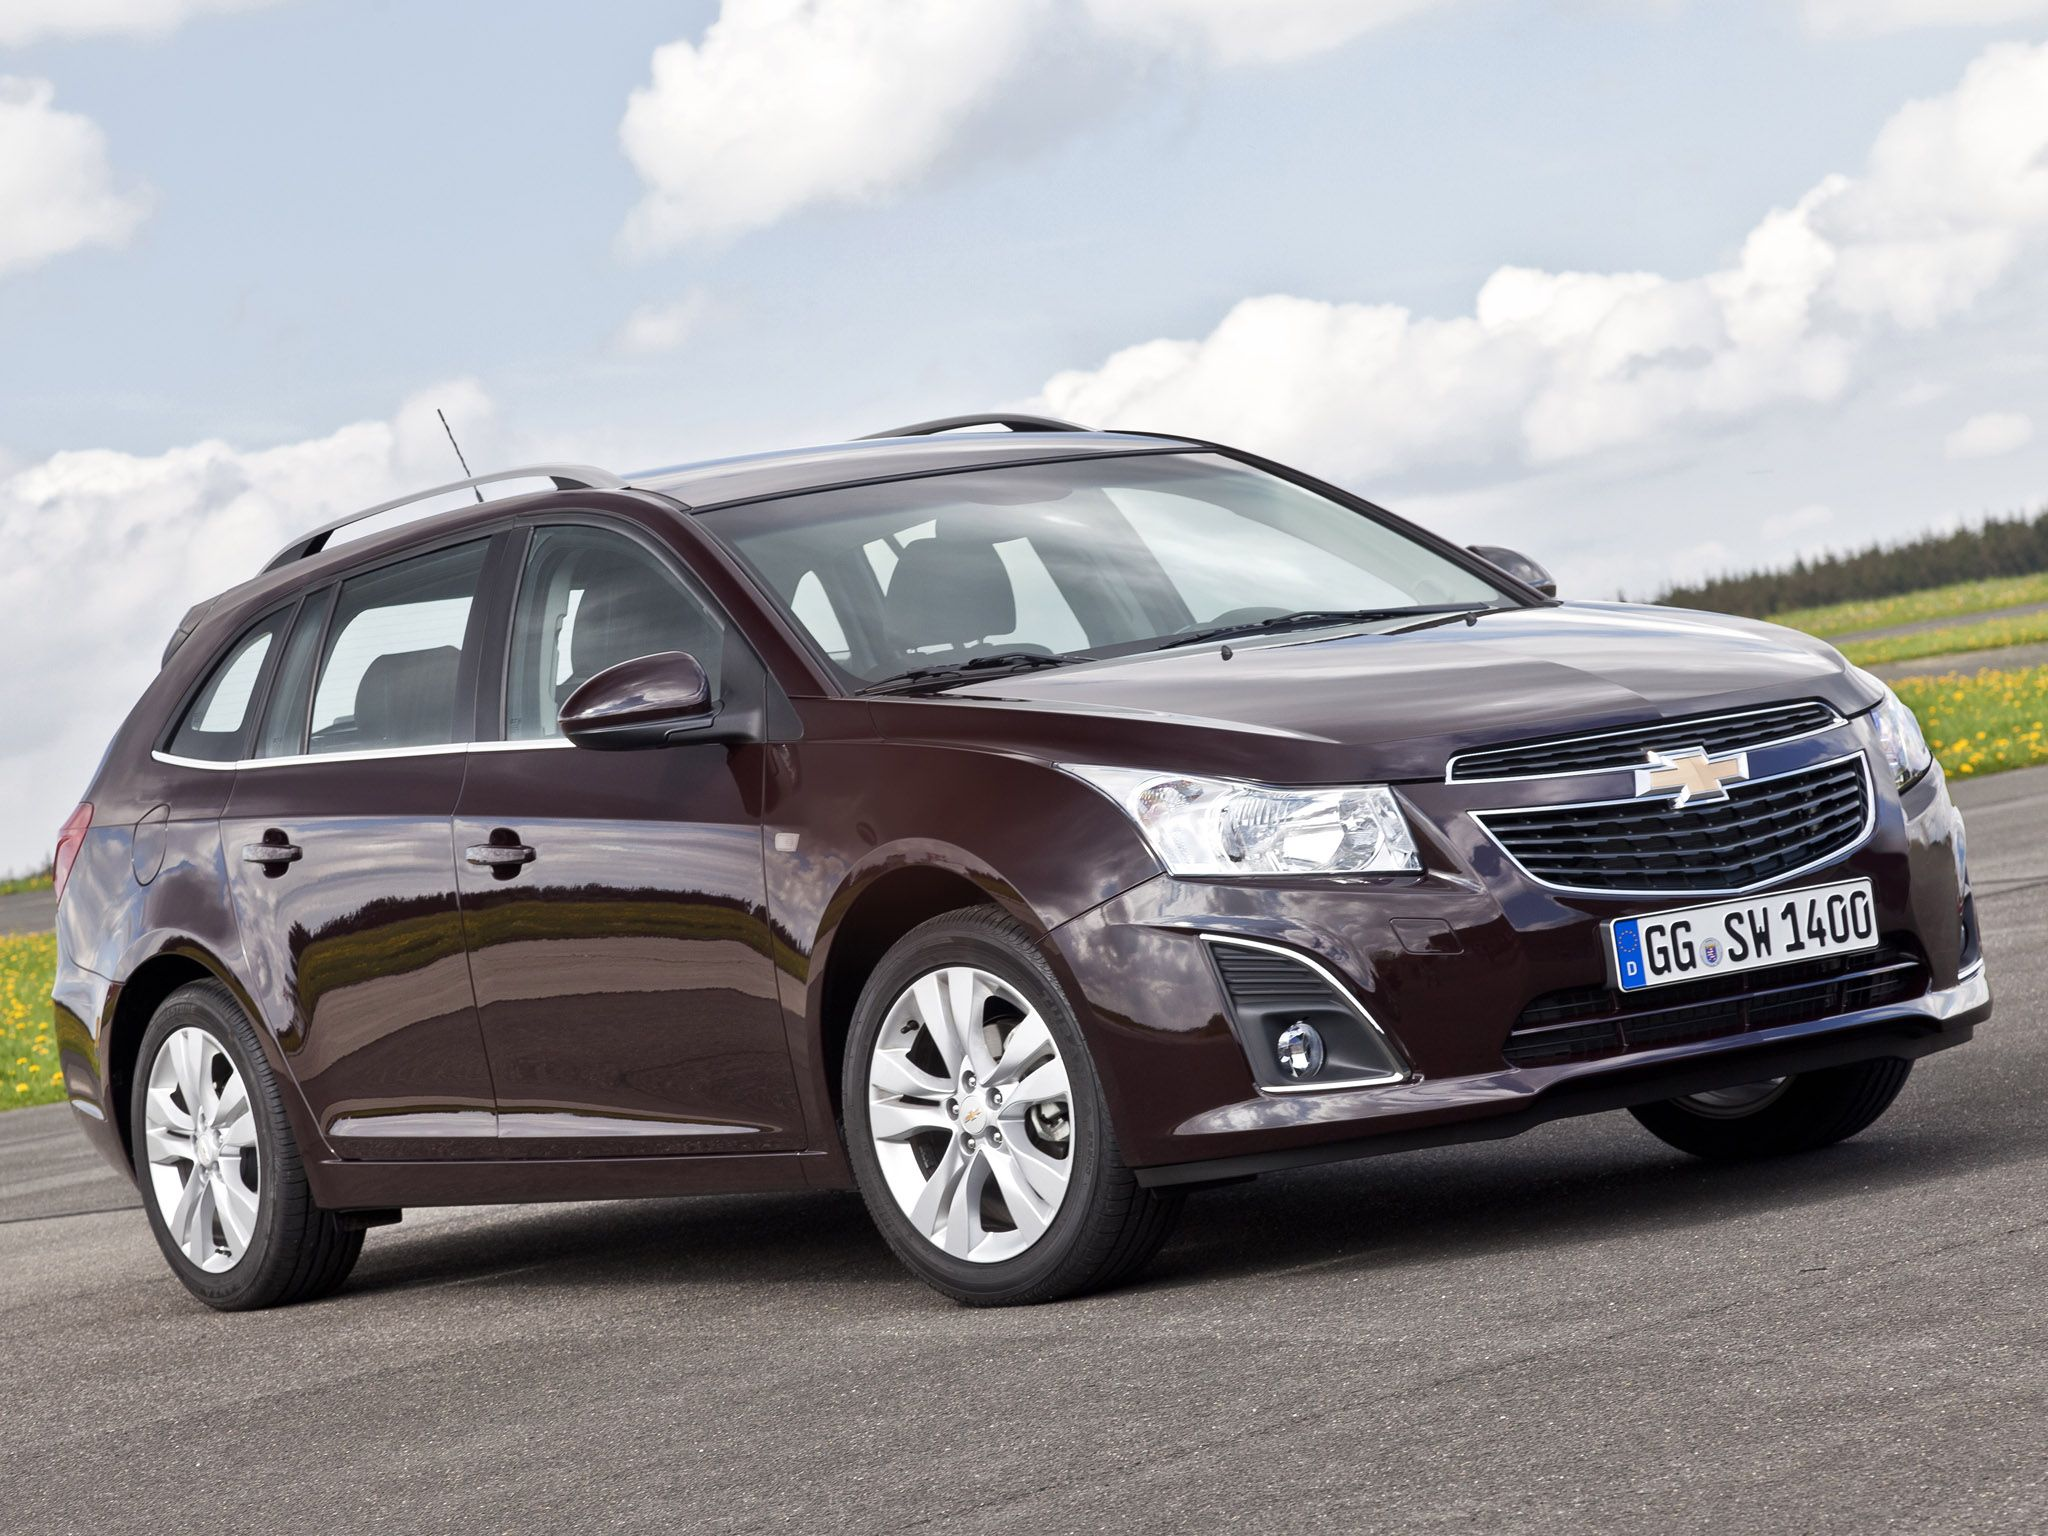 2013 chevrolet cruze station wagon car pictures